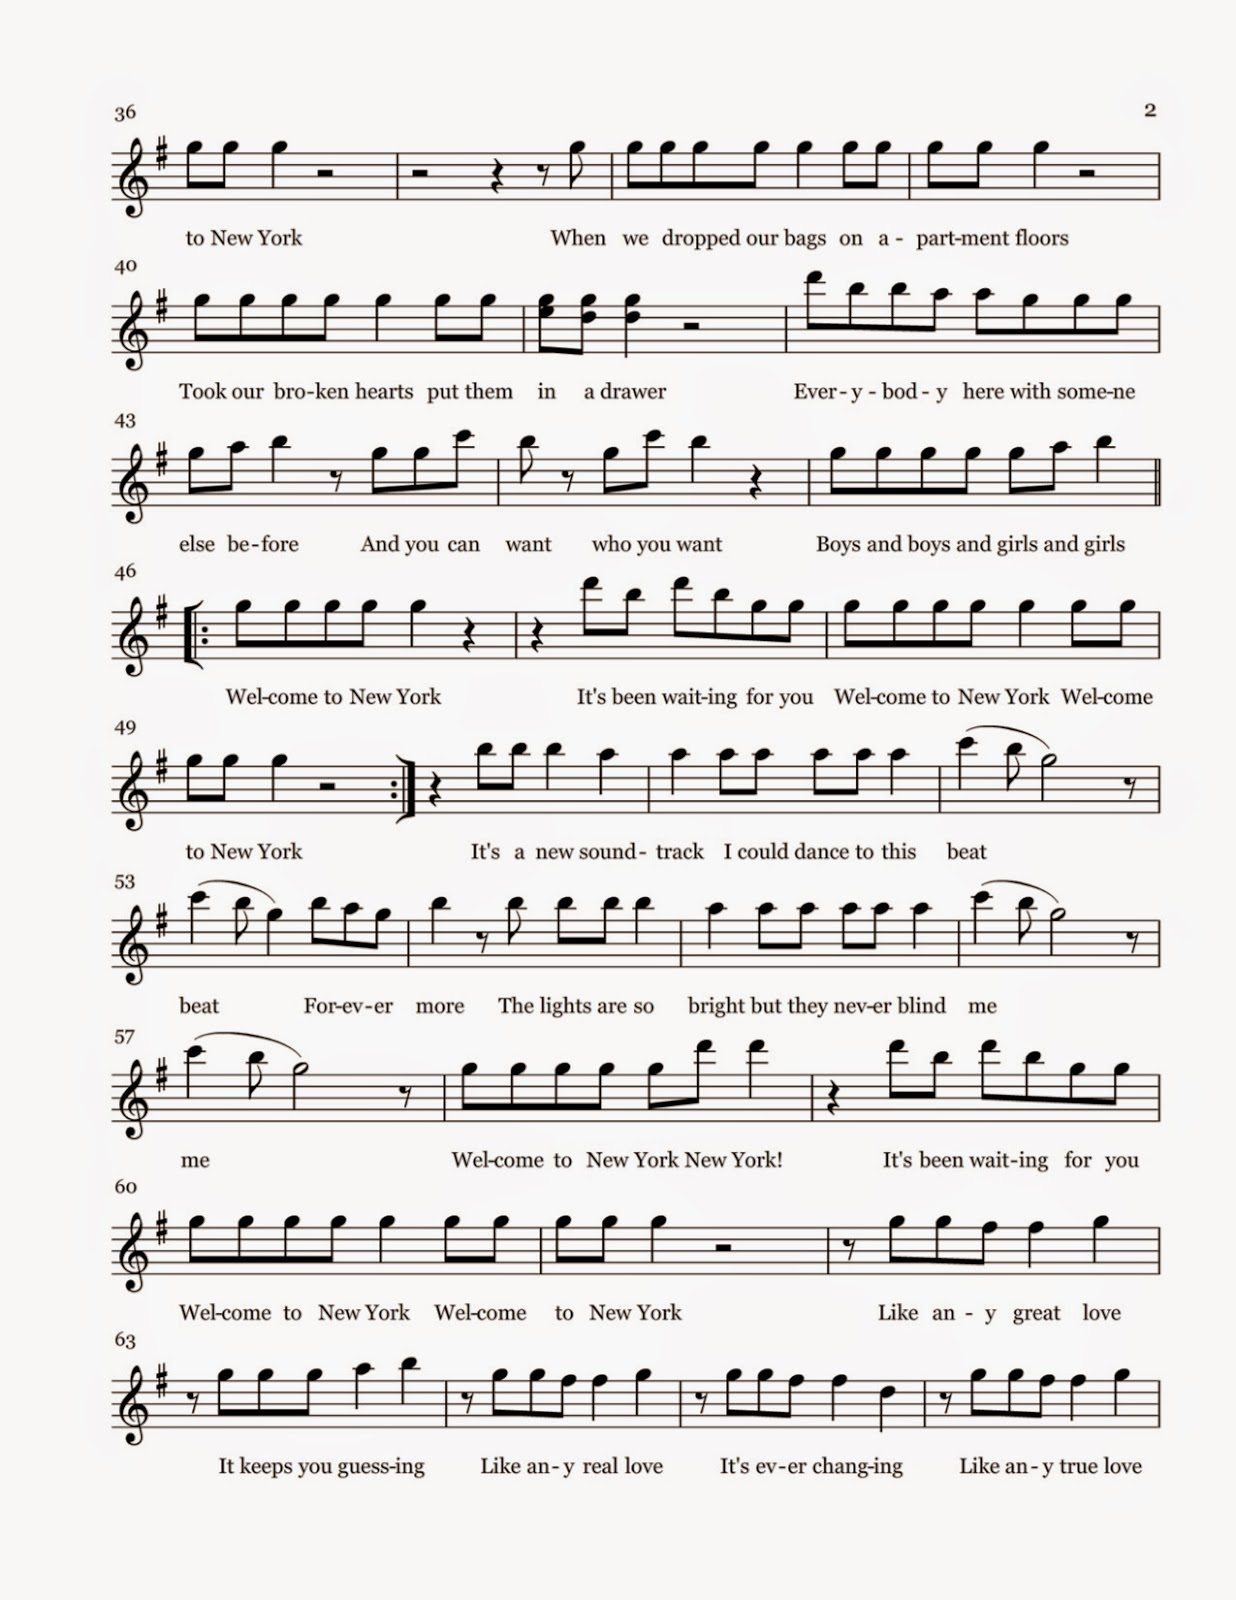 Flute sheet music welcome to new york sheet music for House house house house music song